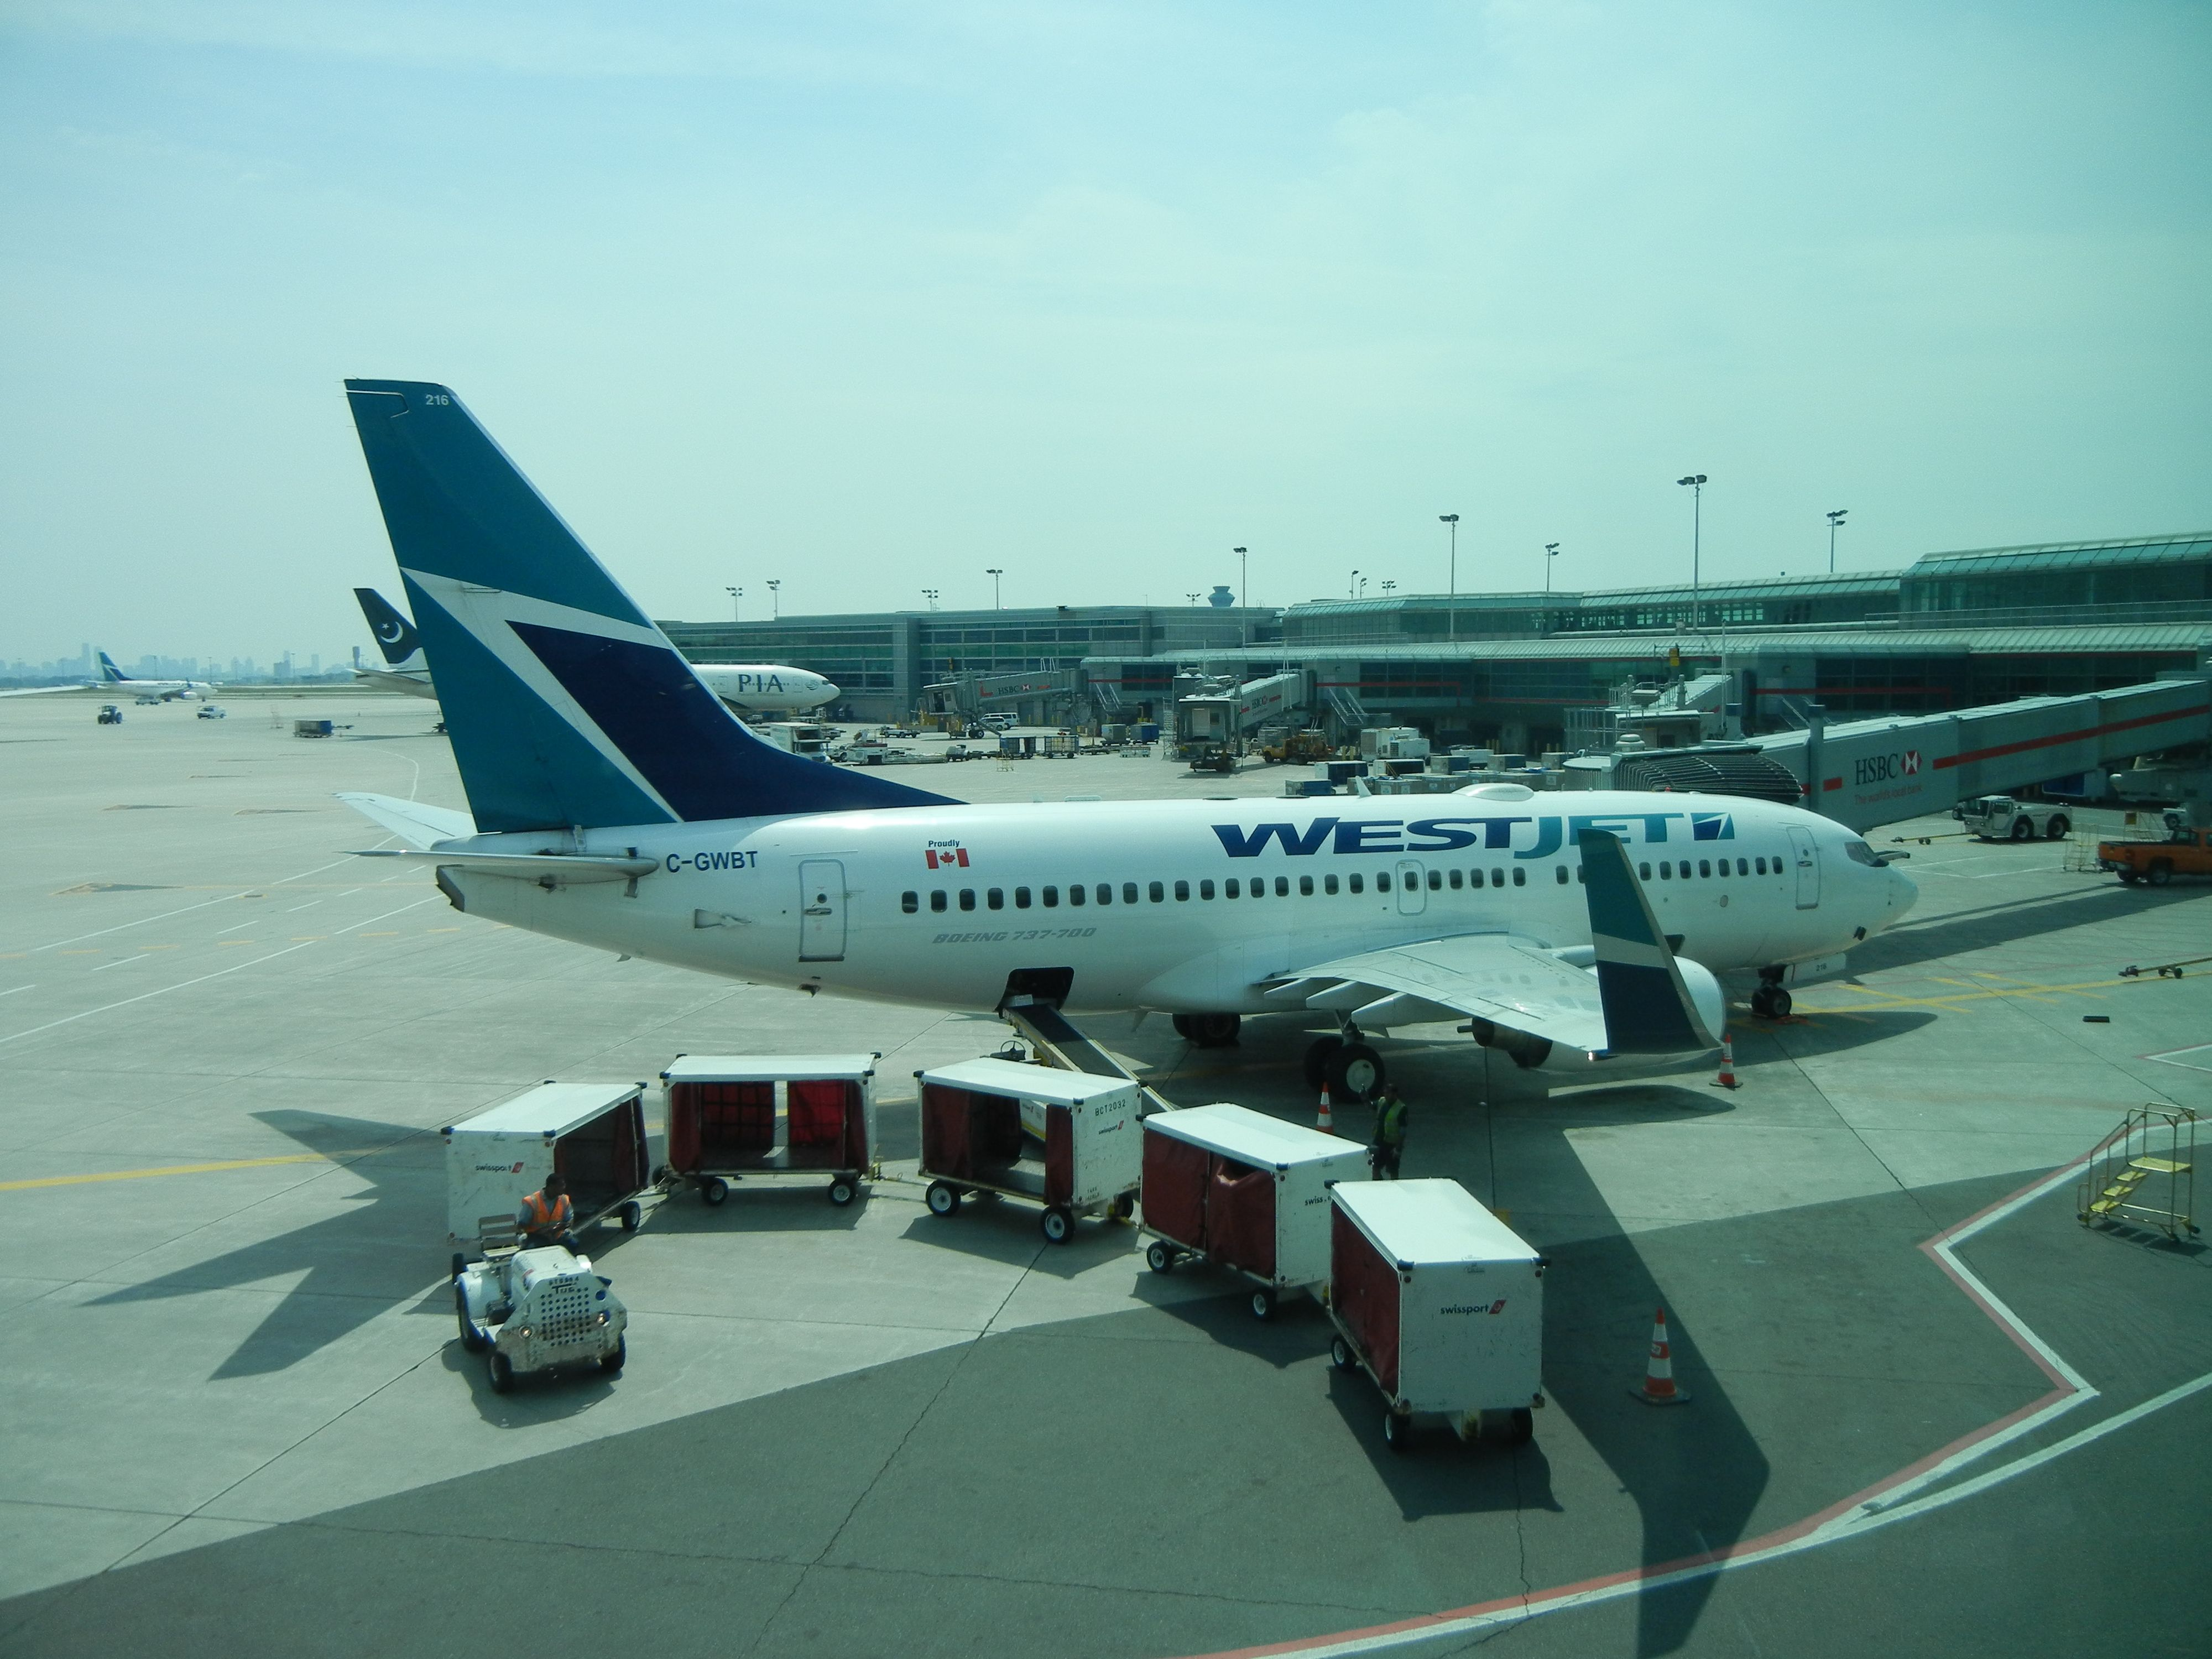 WESTJET The best lowcost airline in Canada. Its recent